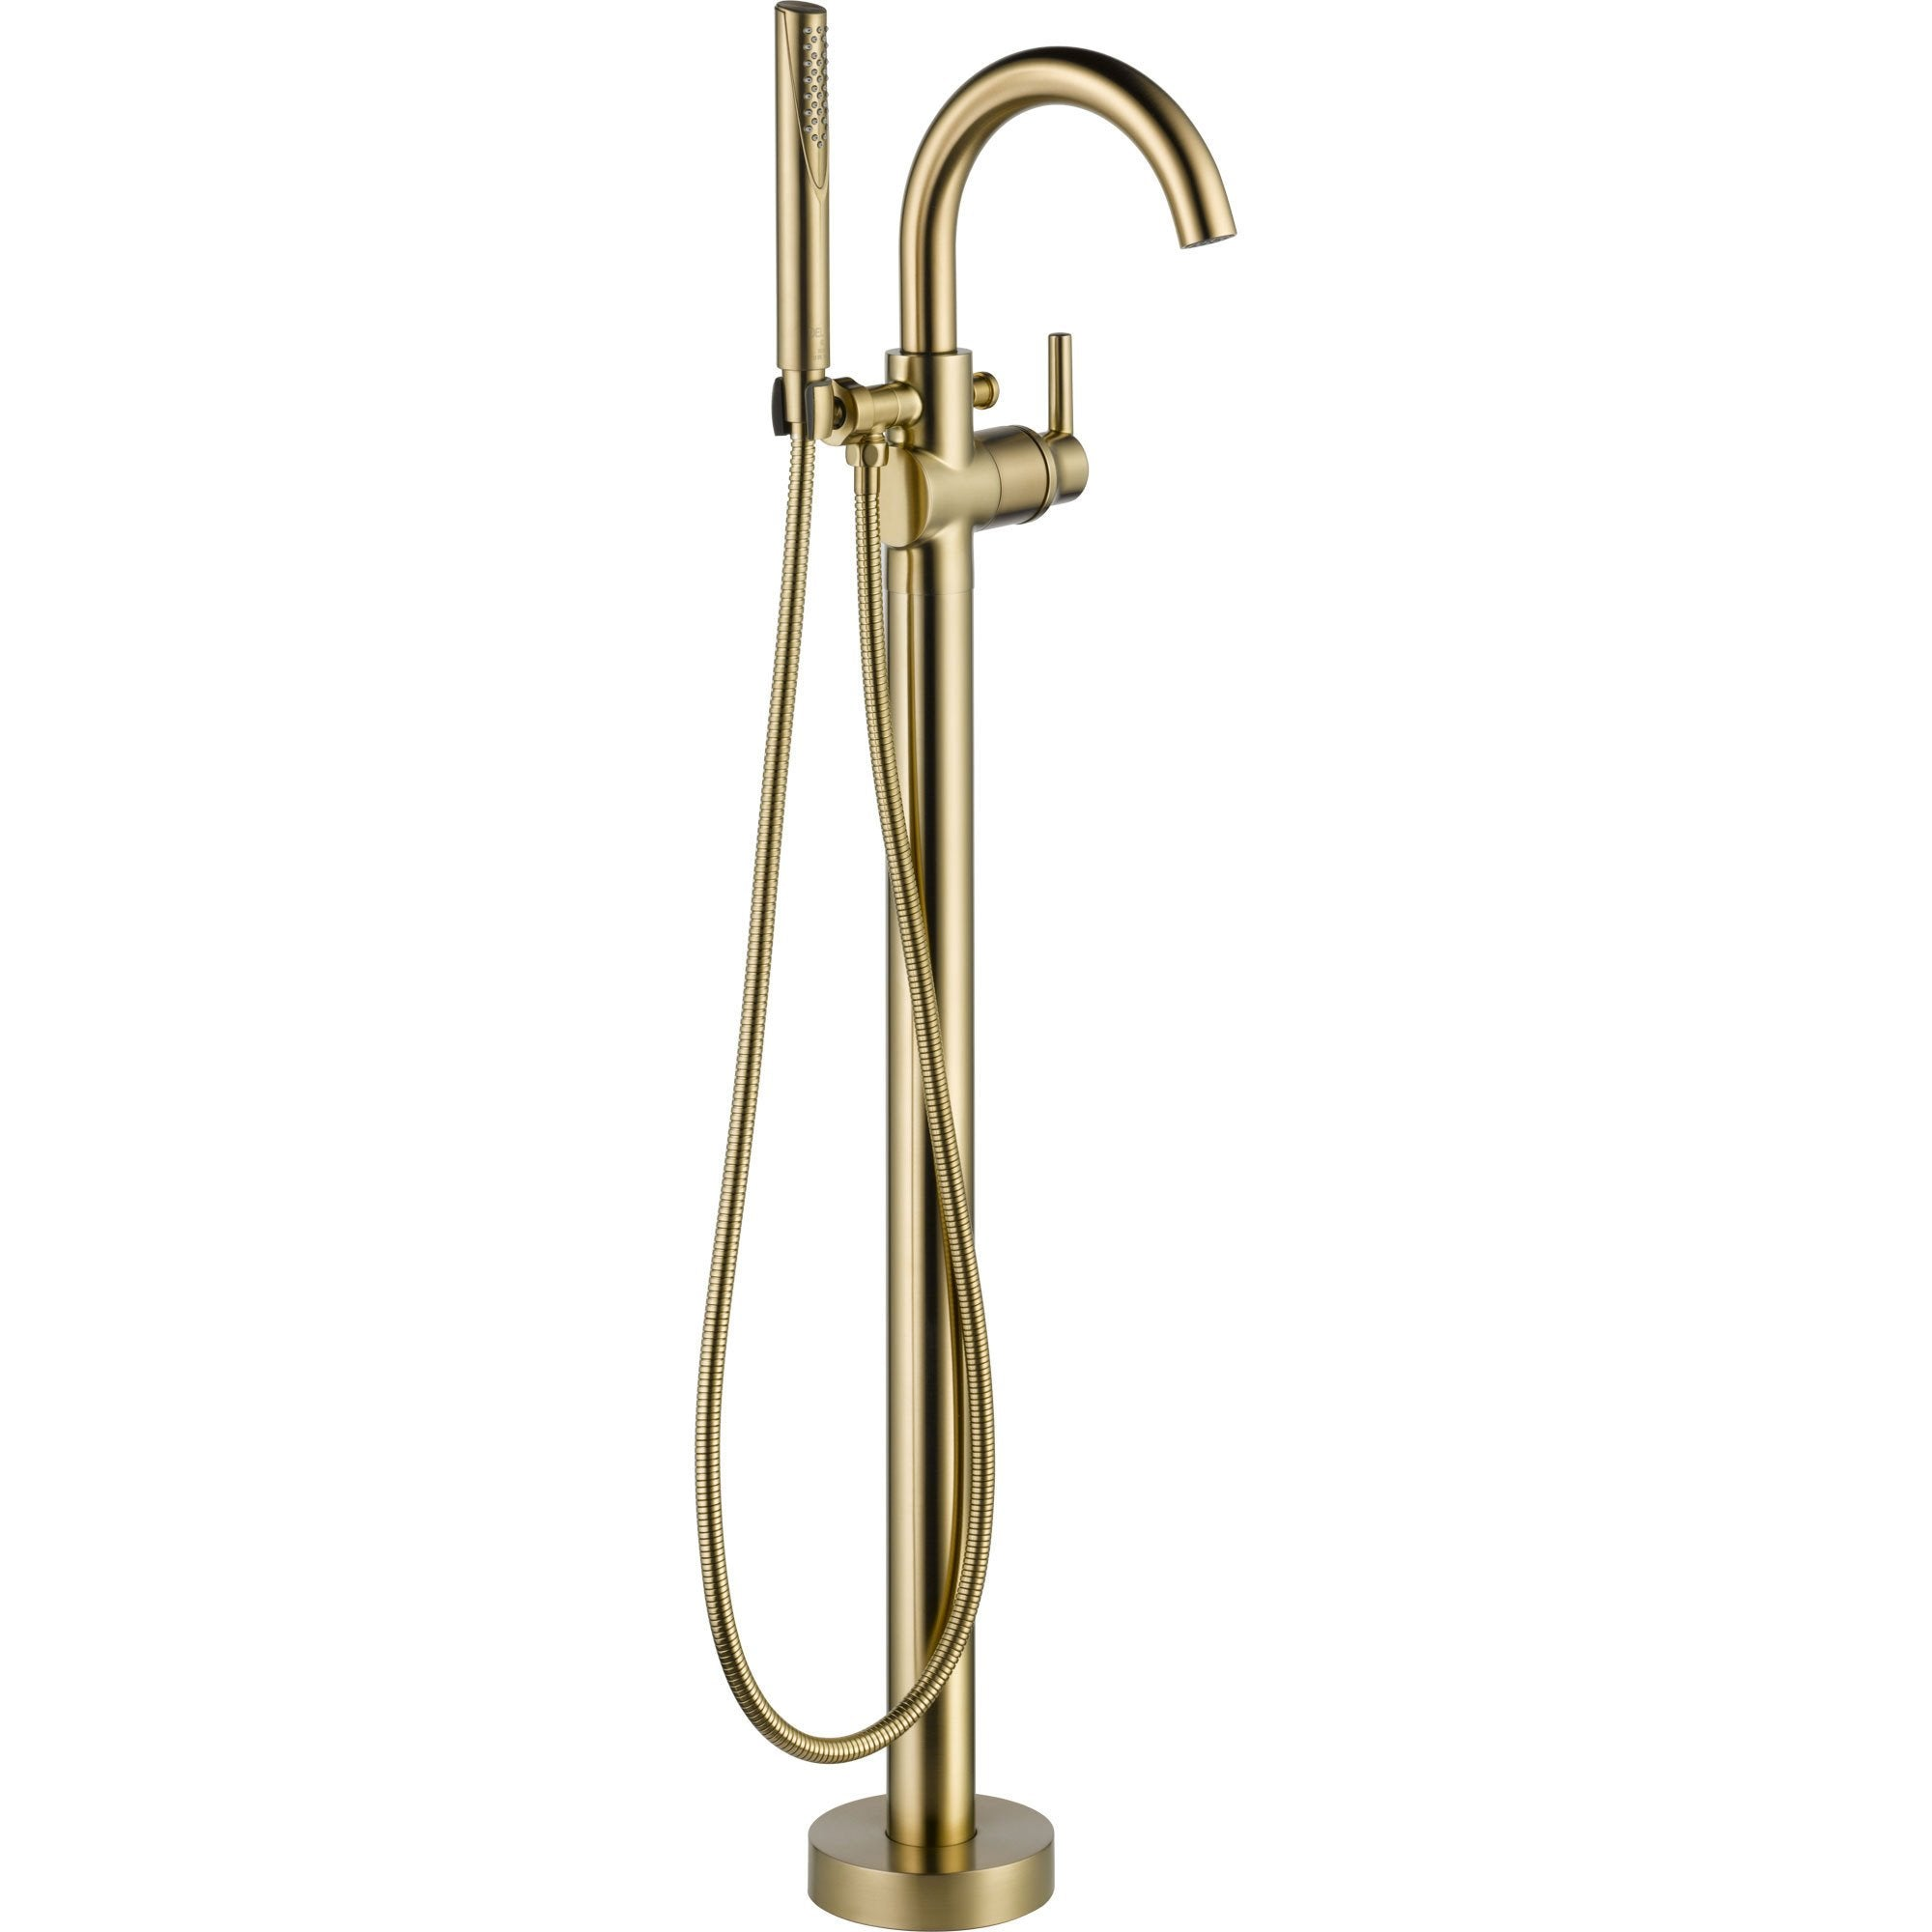 kingston for faucets tub berwick delta within cross american in wall amazing brass mounted bathroom faucet new vessel handles lever mount intended standard handle